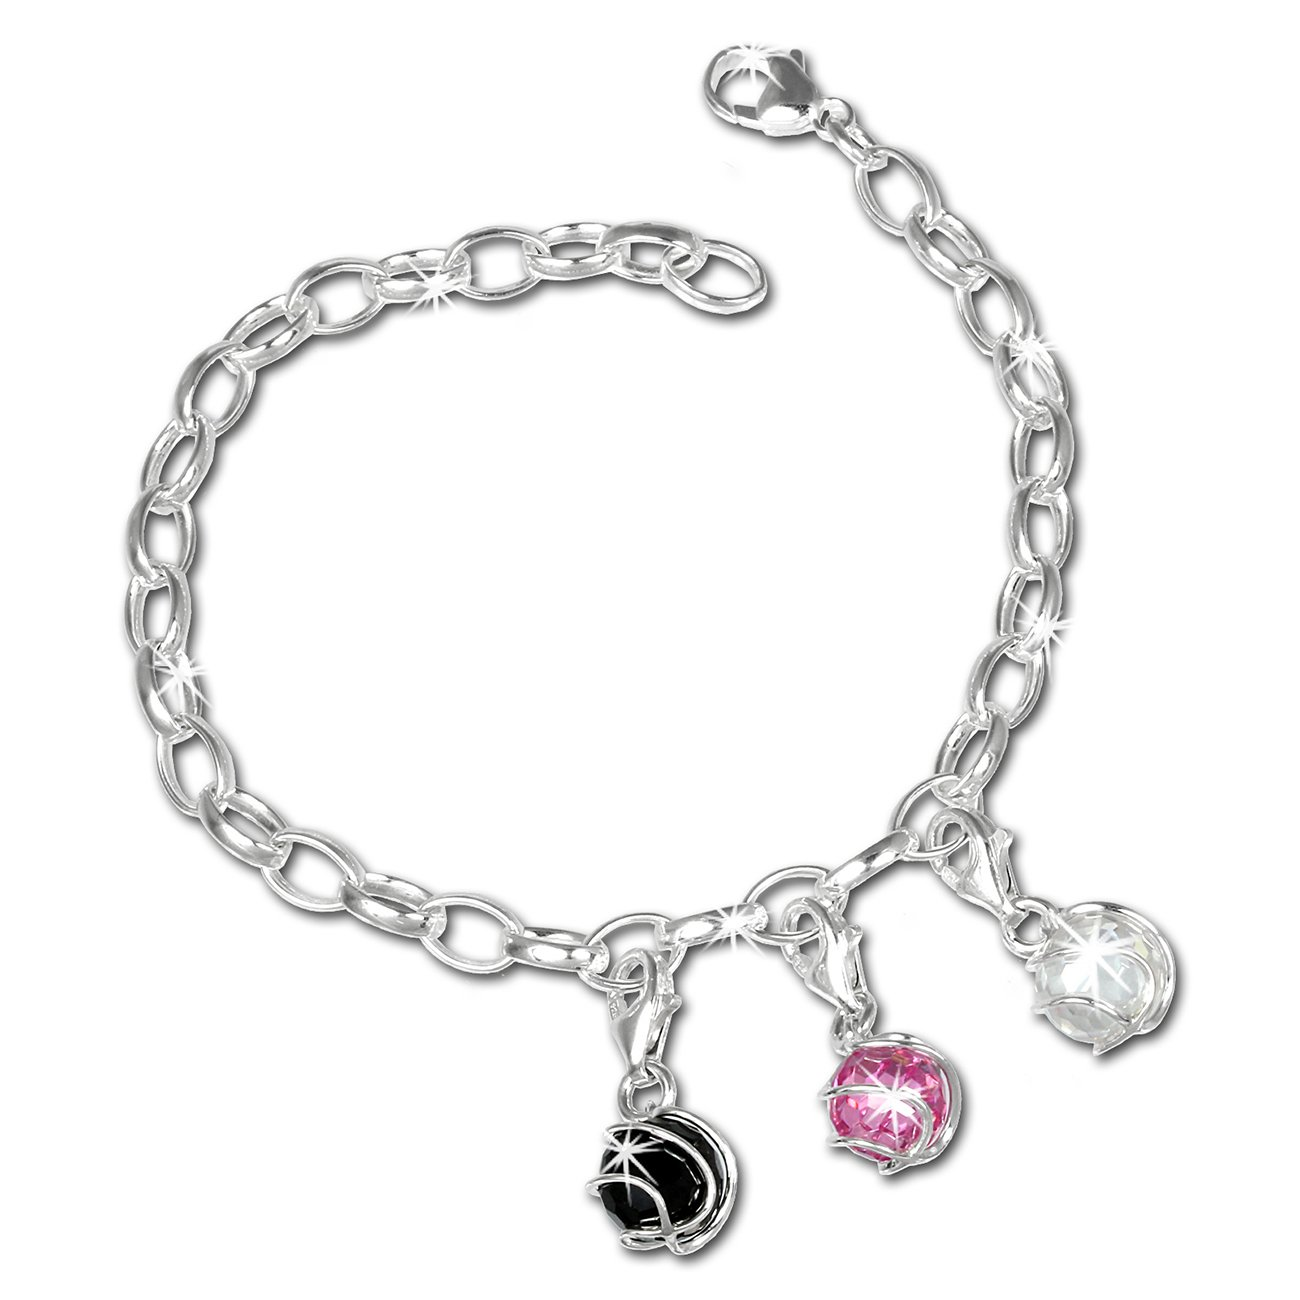 SilberDream Charms Armband Set - Kugel - 925 Sterling Silber Charm Armband und Anhänger - FCA311 Charms Sets